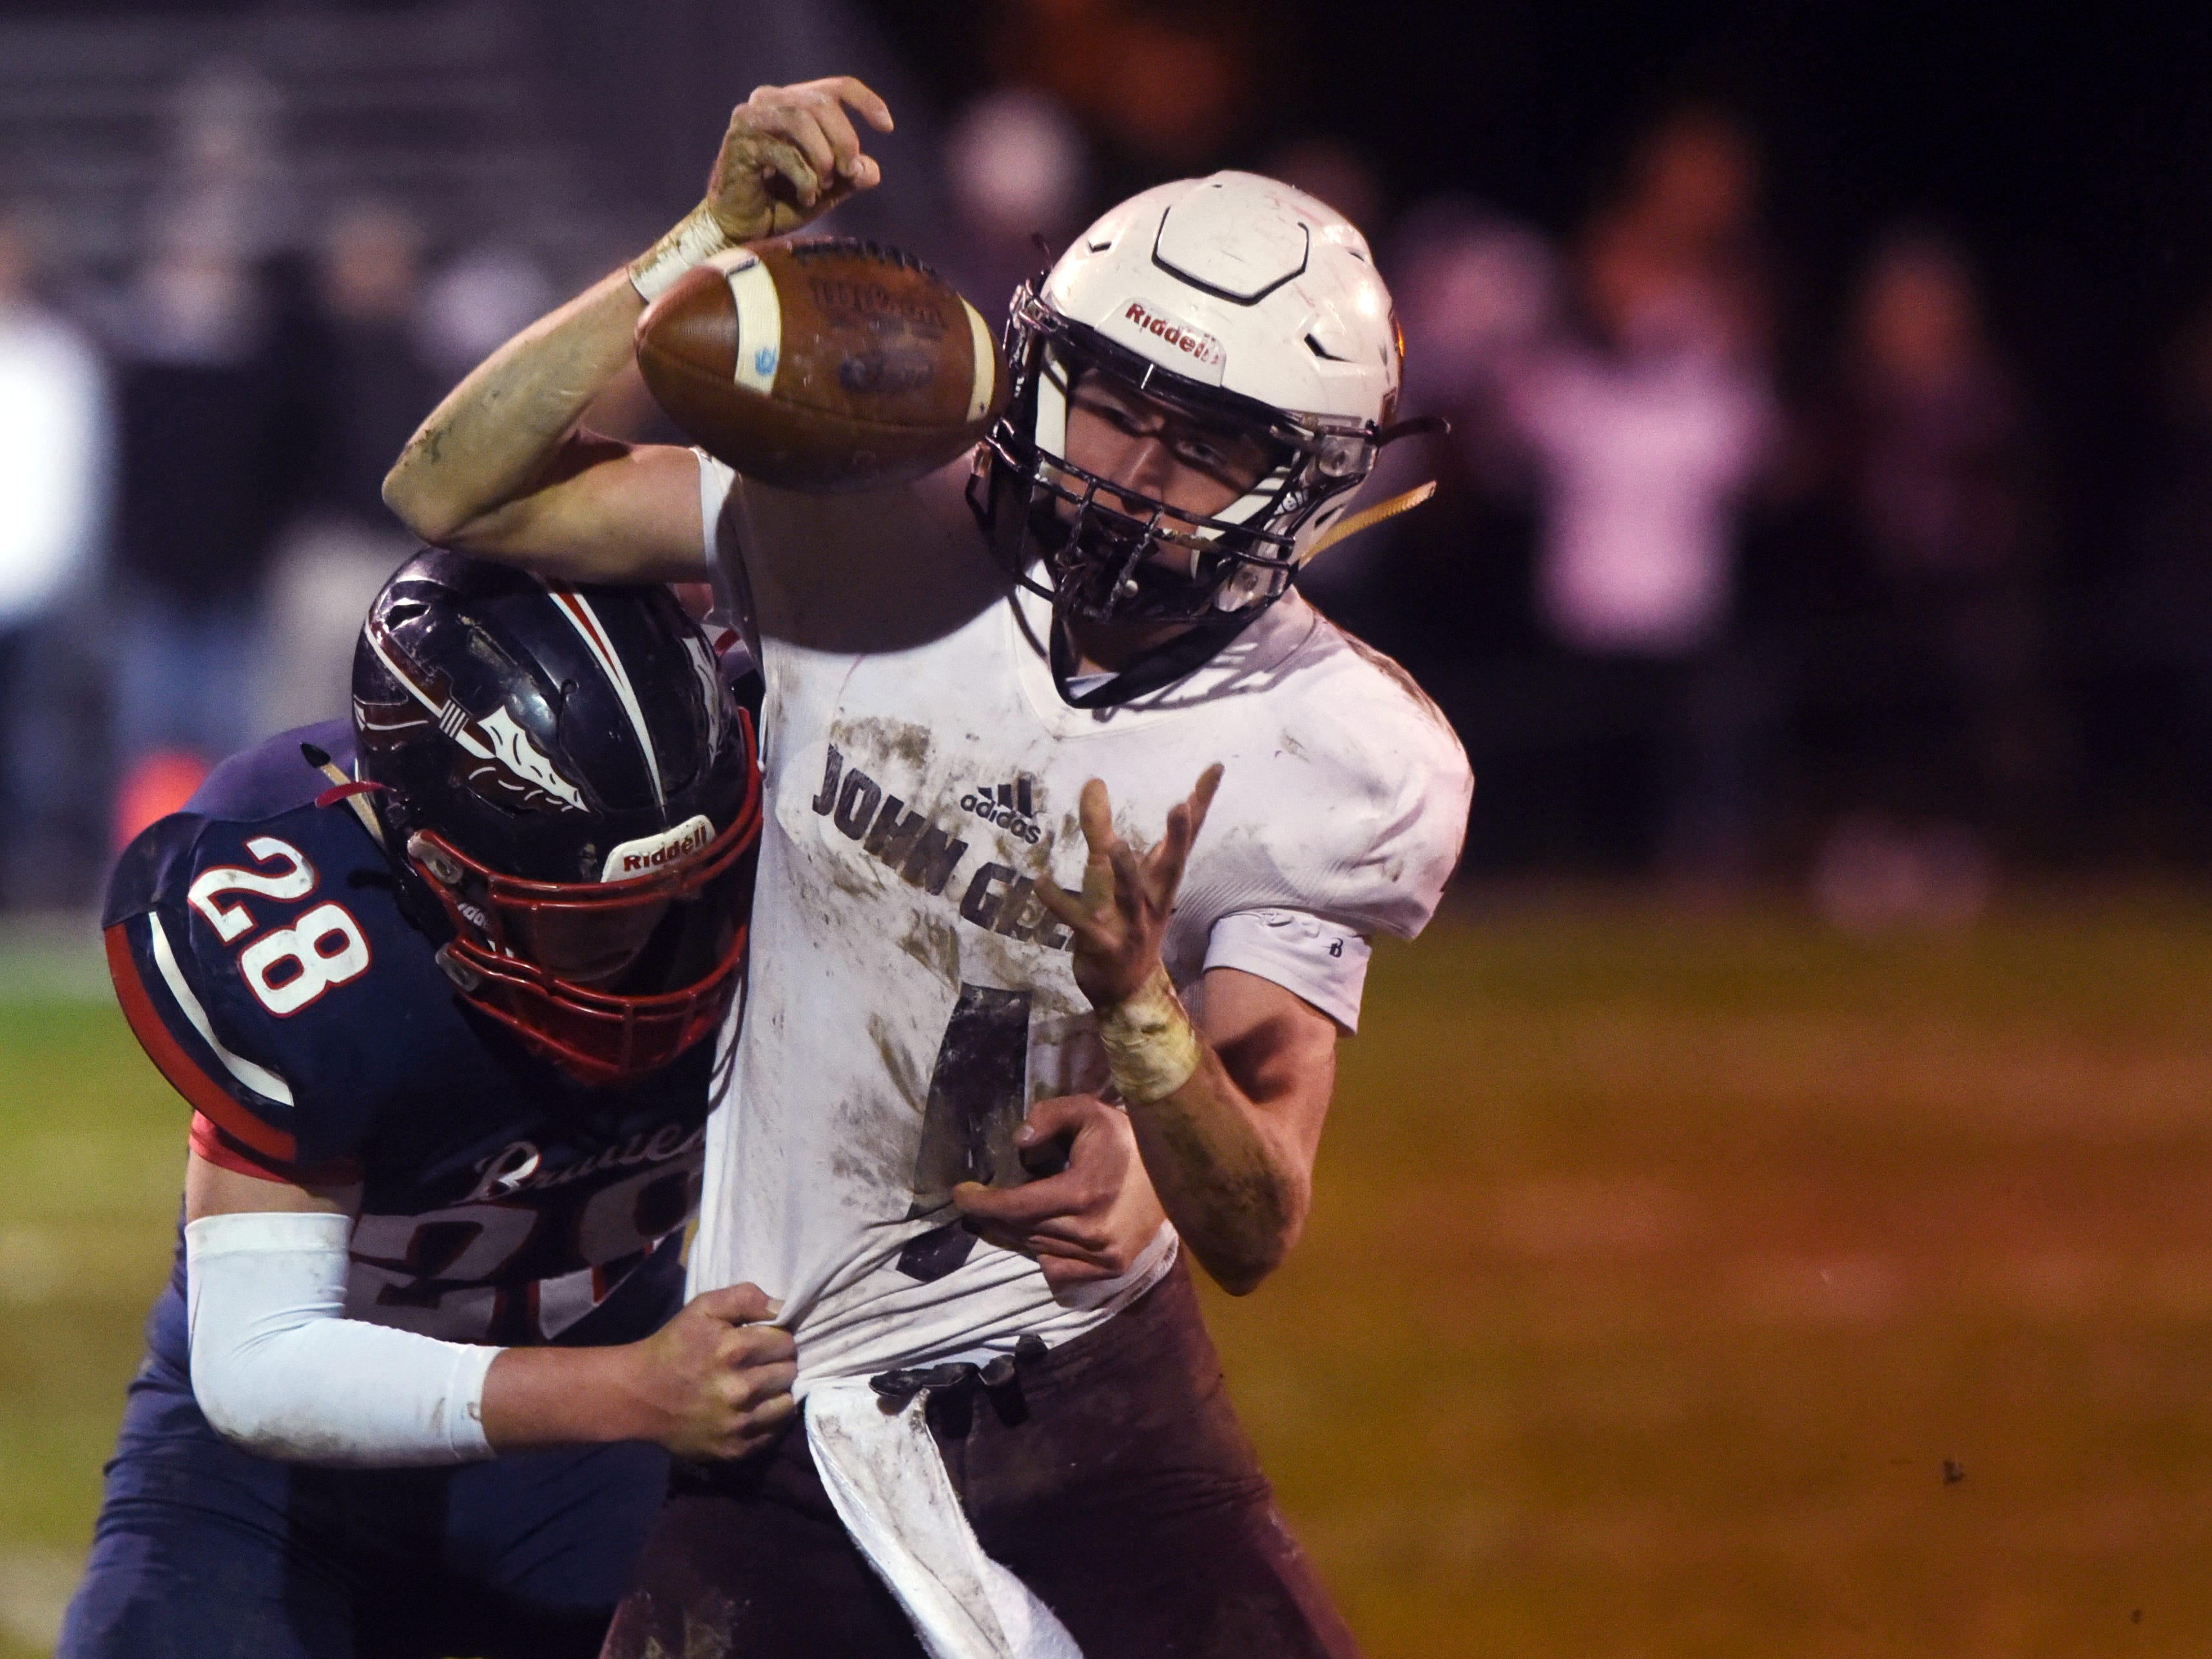 Parker Zachrich has the ball knocked loose by Kent Shupbach during John Glenn's 16-14 playoff loss to host Gnadenhutten Indian Valley on Saturday night.